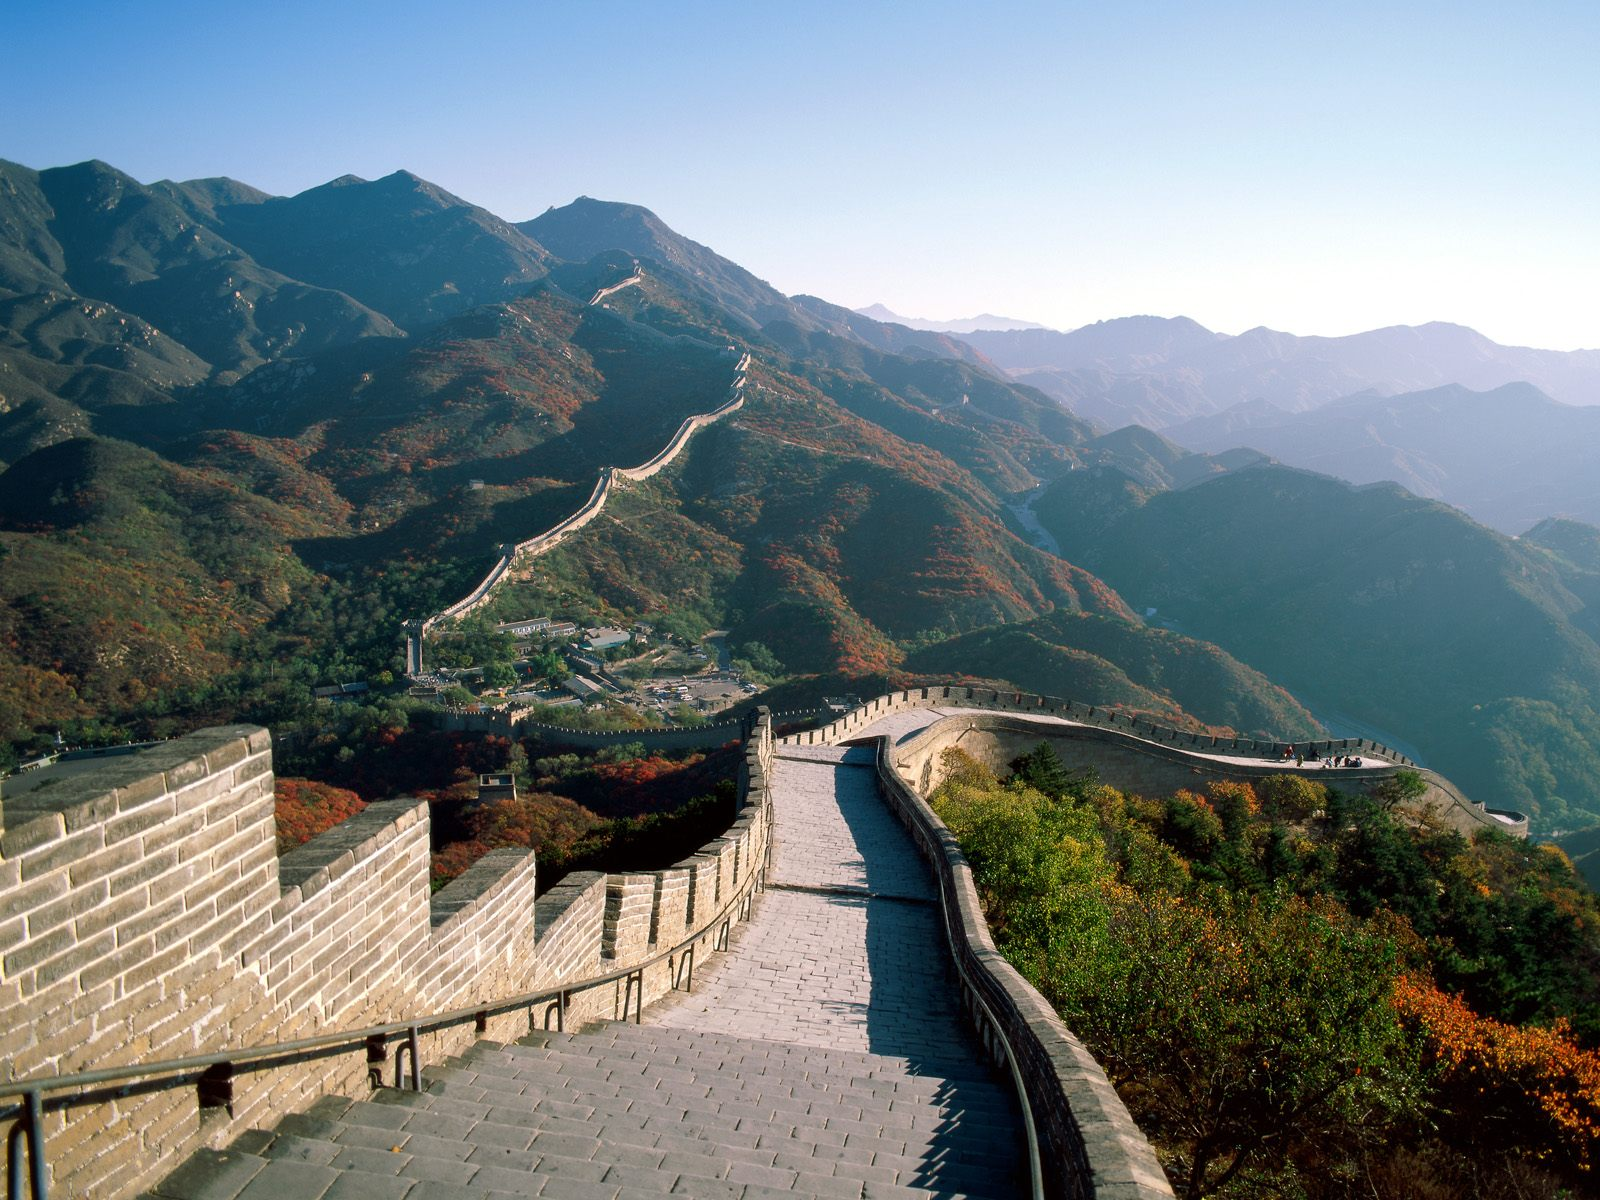 the_great_wall_of_china_chinathread_desktop_1600x1200_wallpaper-160643